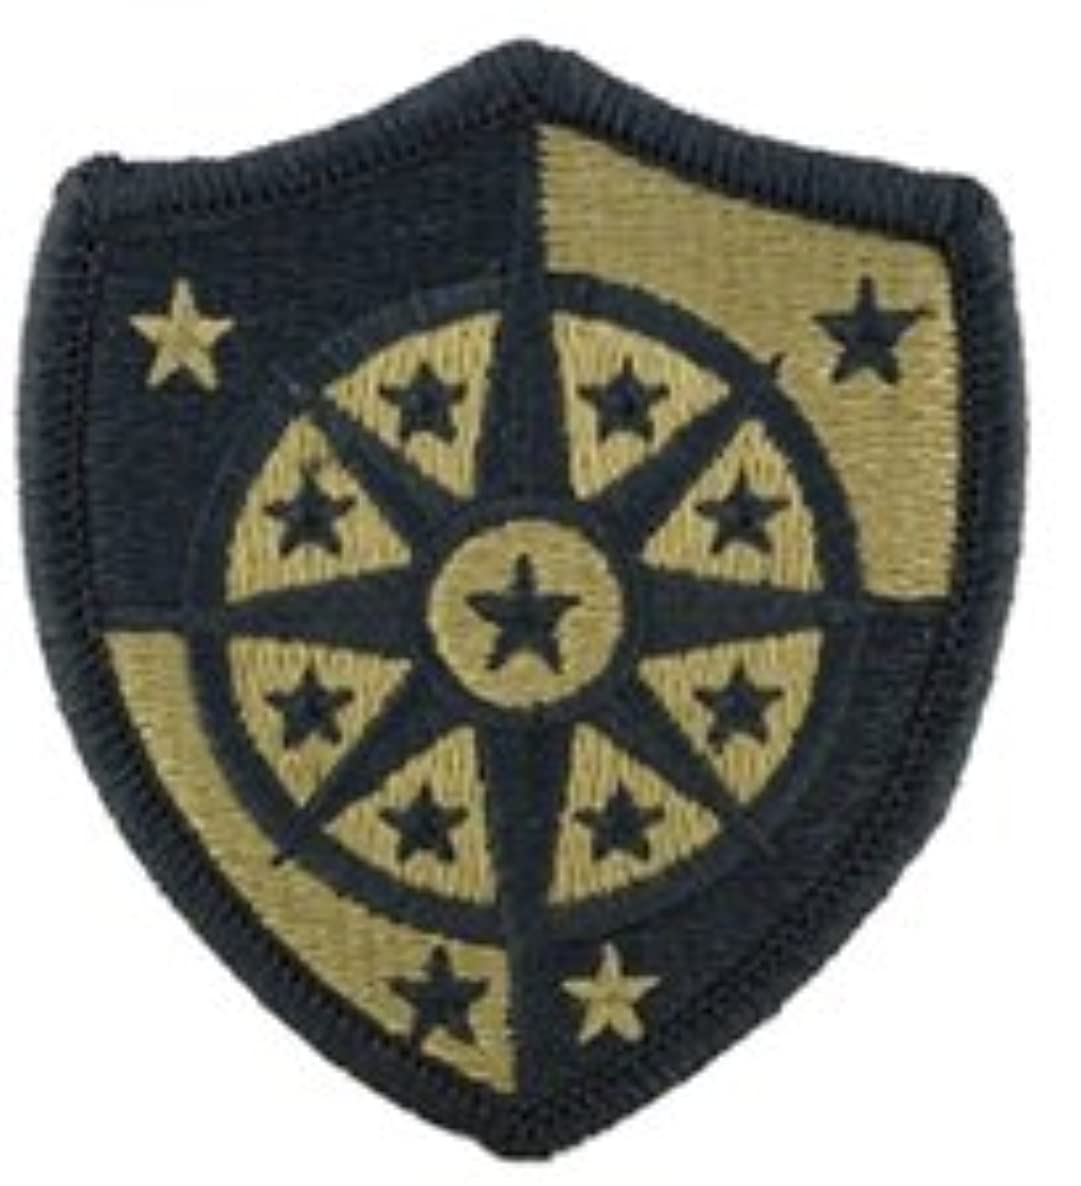 Cyber Protection Brigade Multicam Patch